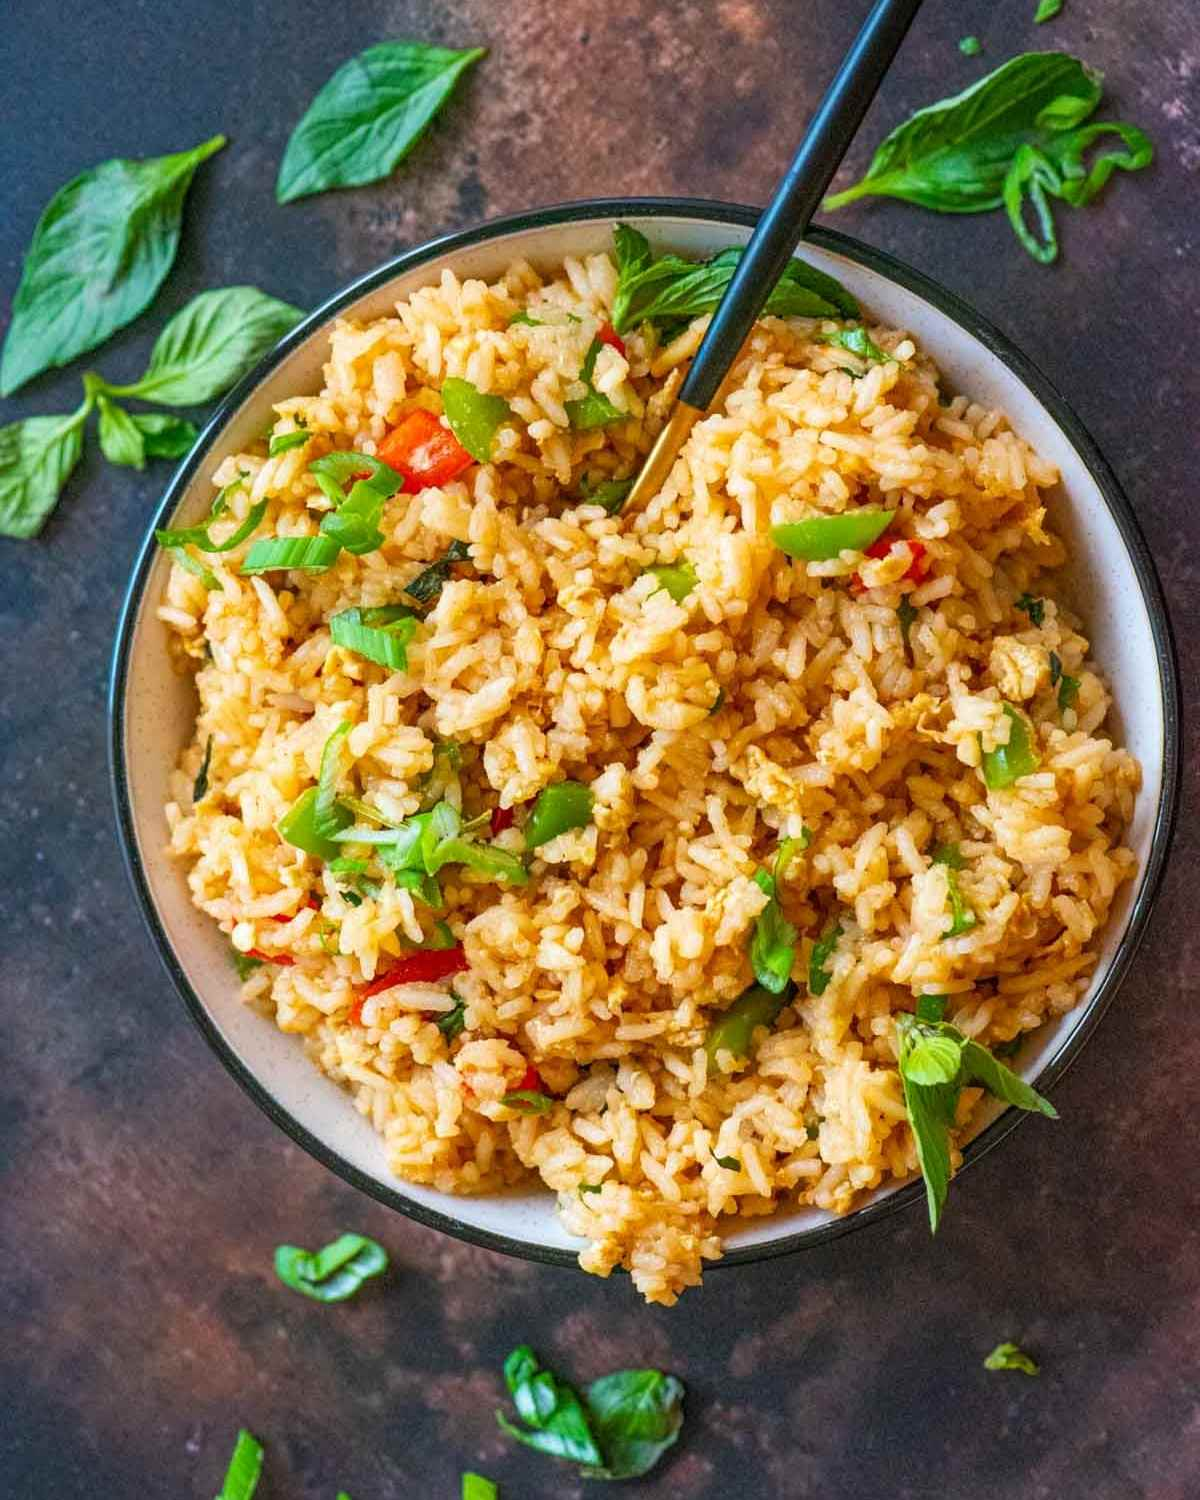 Top view of a bowl of fried rice and a serving spoon placed on a brown board